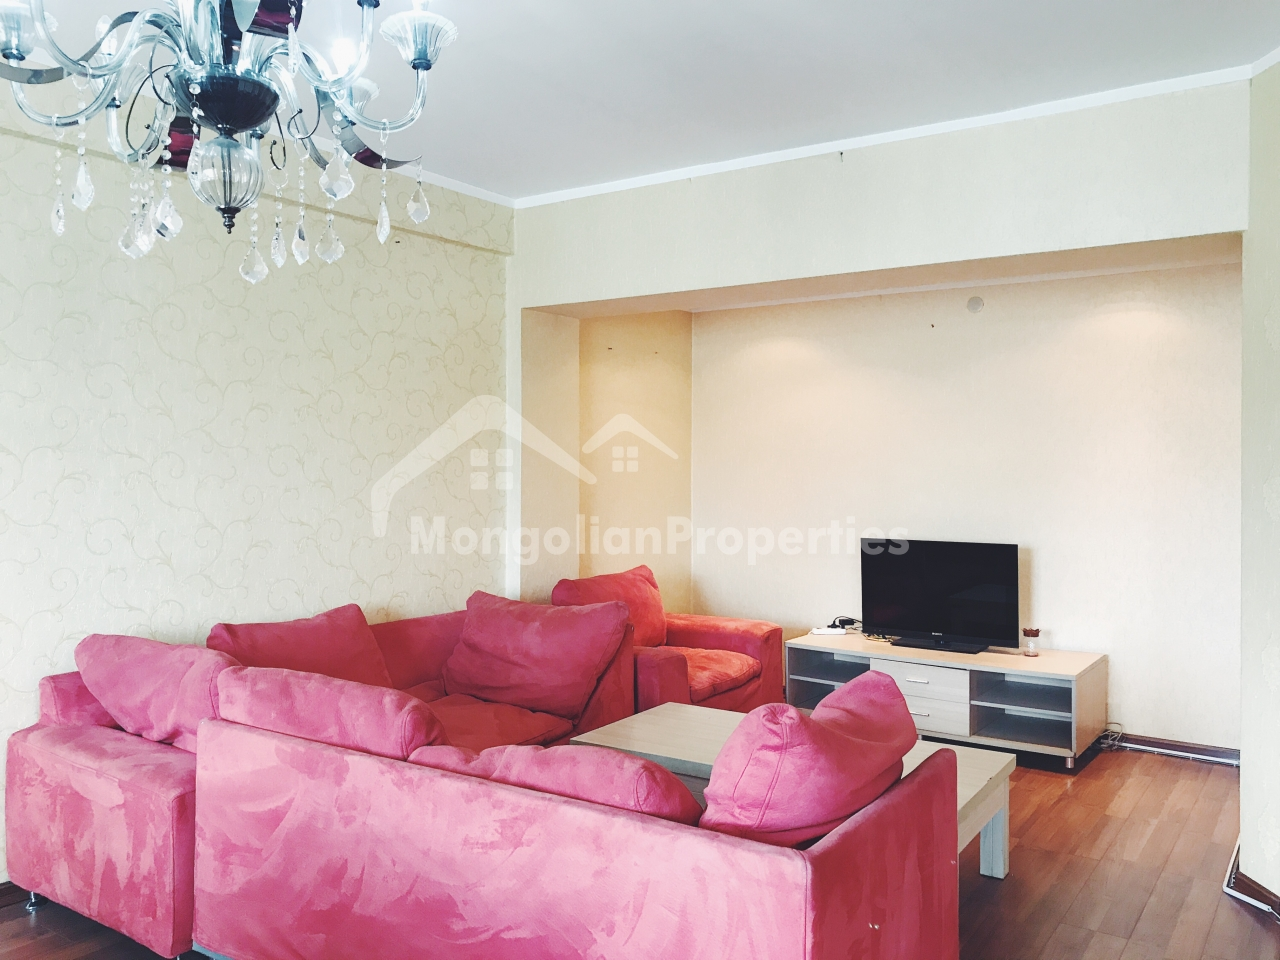 FOR SALE: 3 BEDROOM SPACIOUS APARTMENT IN SEOUL STREET